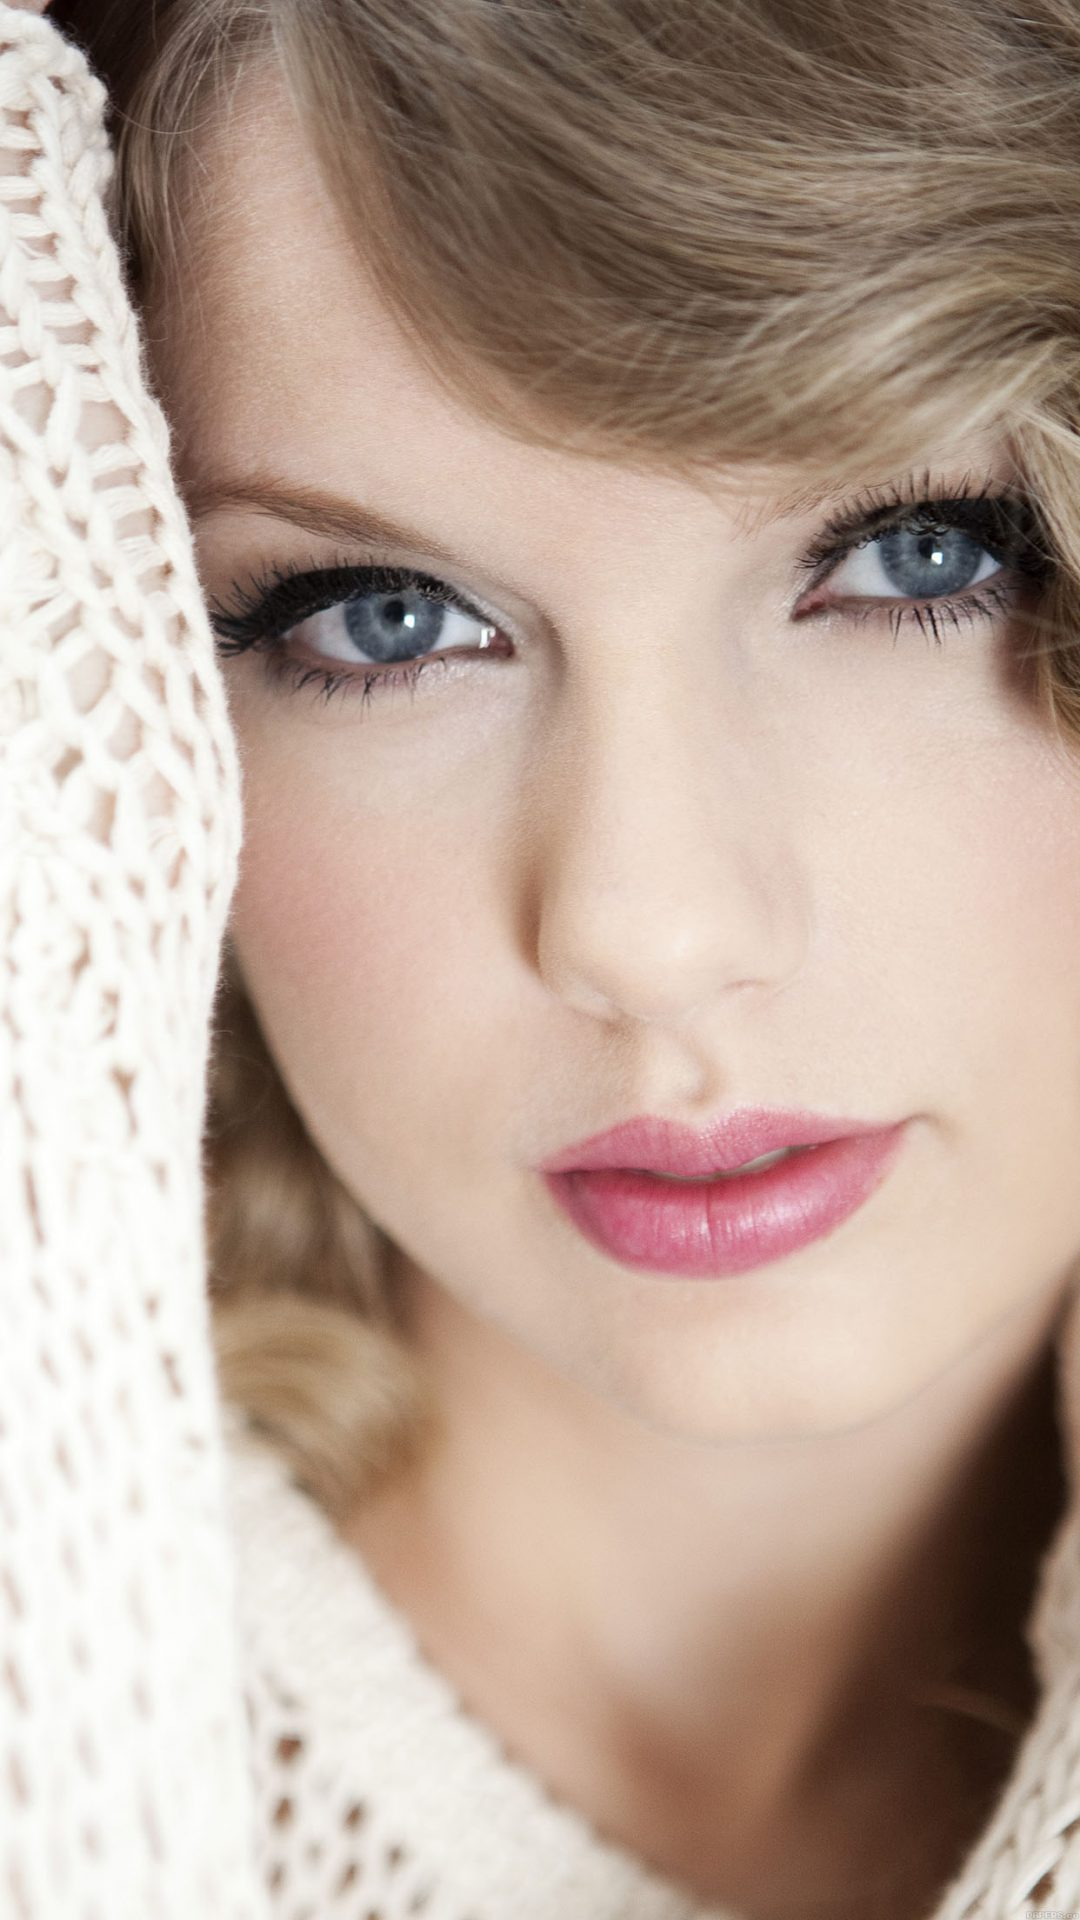 wallpaper taylor swift firl face music - walls iphone